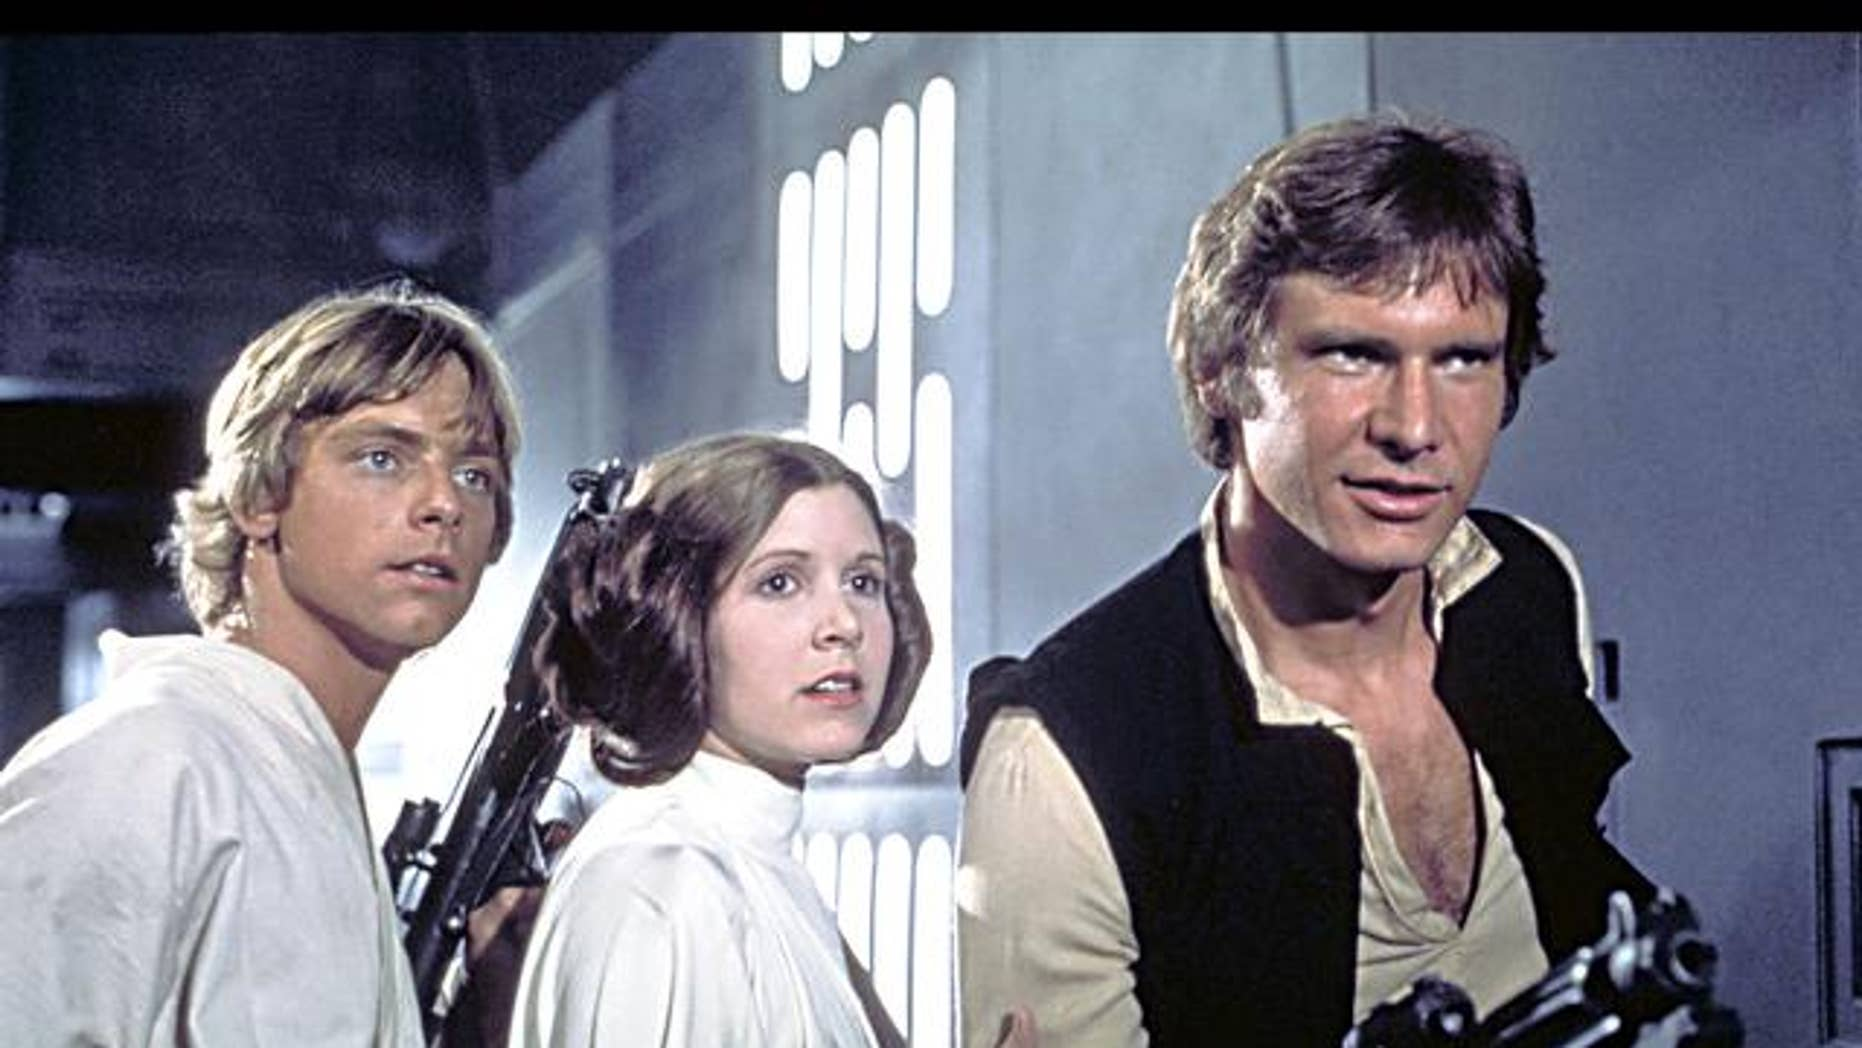 'Star Wars' actors Mark Hamill, Carrie Fisher and Harrison Ford. (AP)